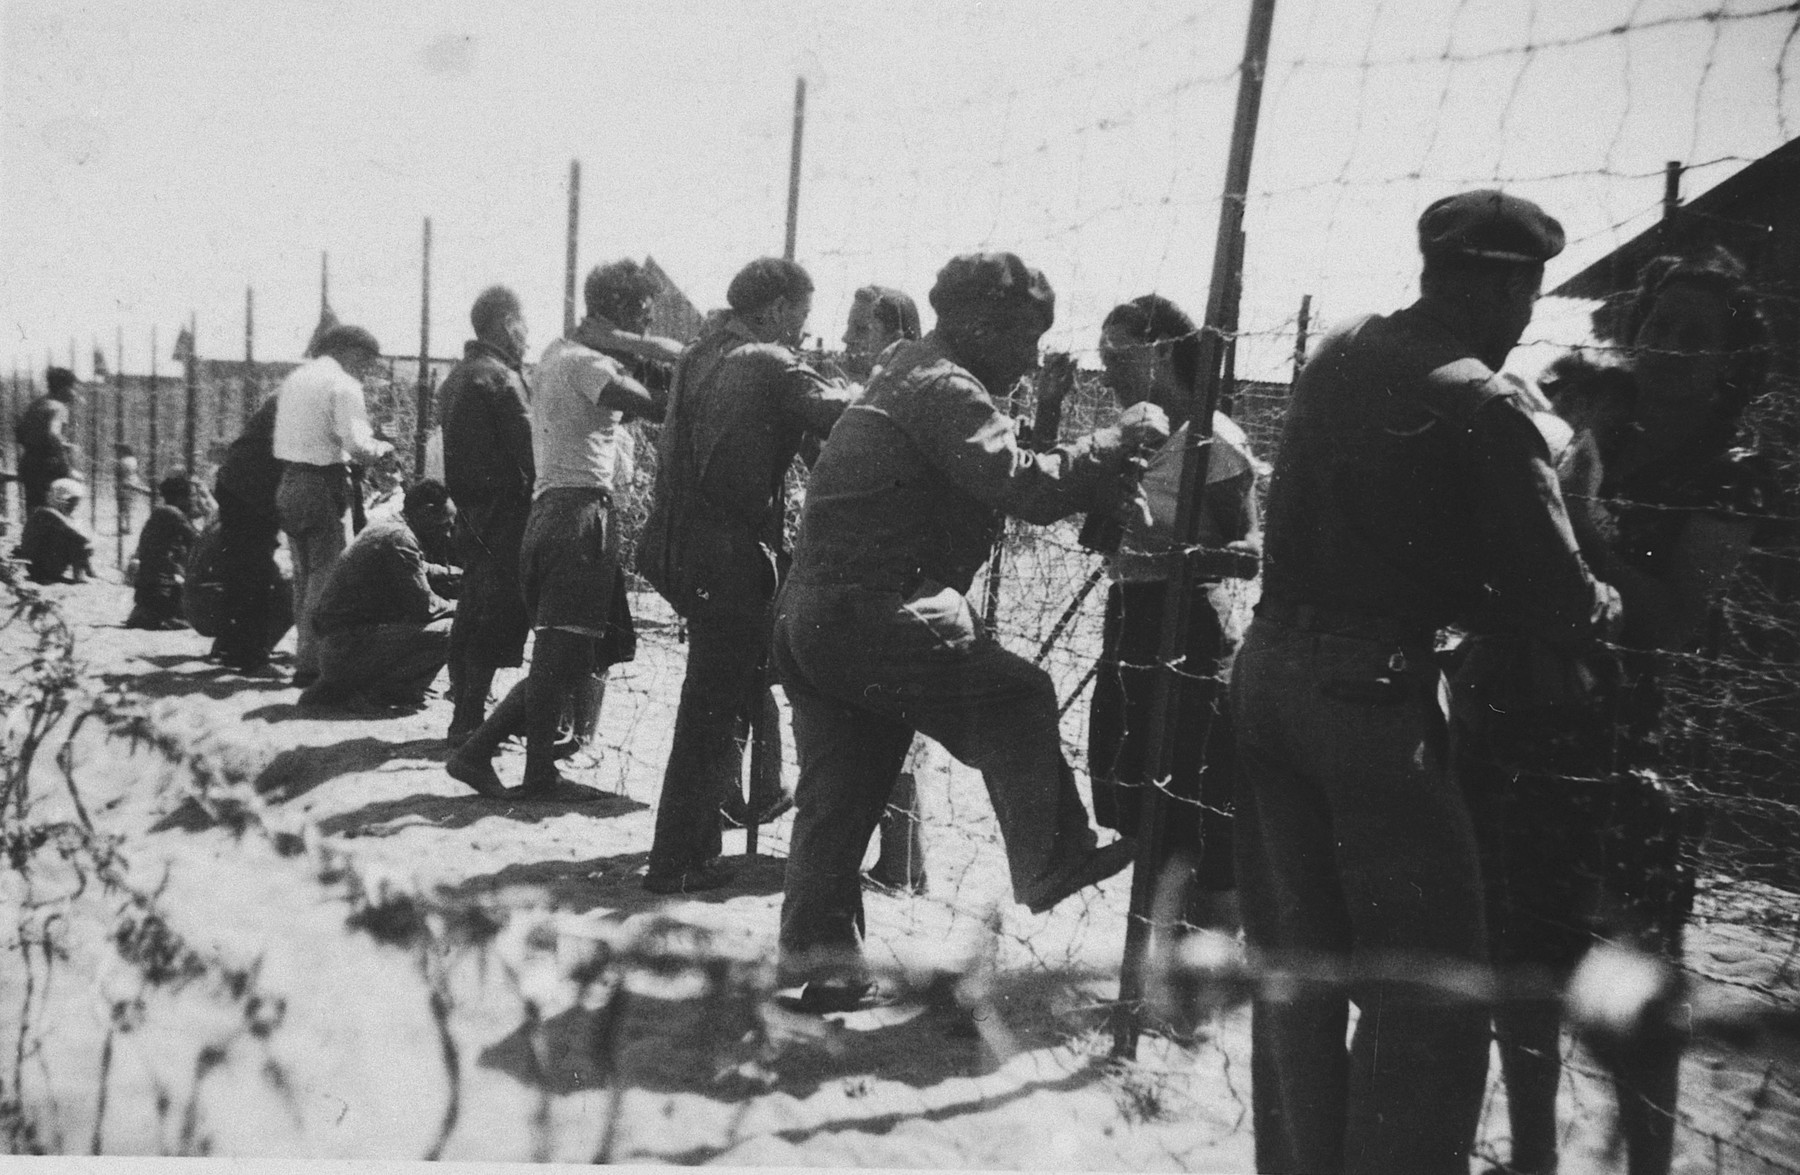 Prisoners gather by the barbed wire fence surrounding the Gurs internment camp.